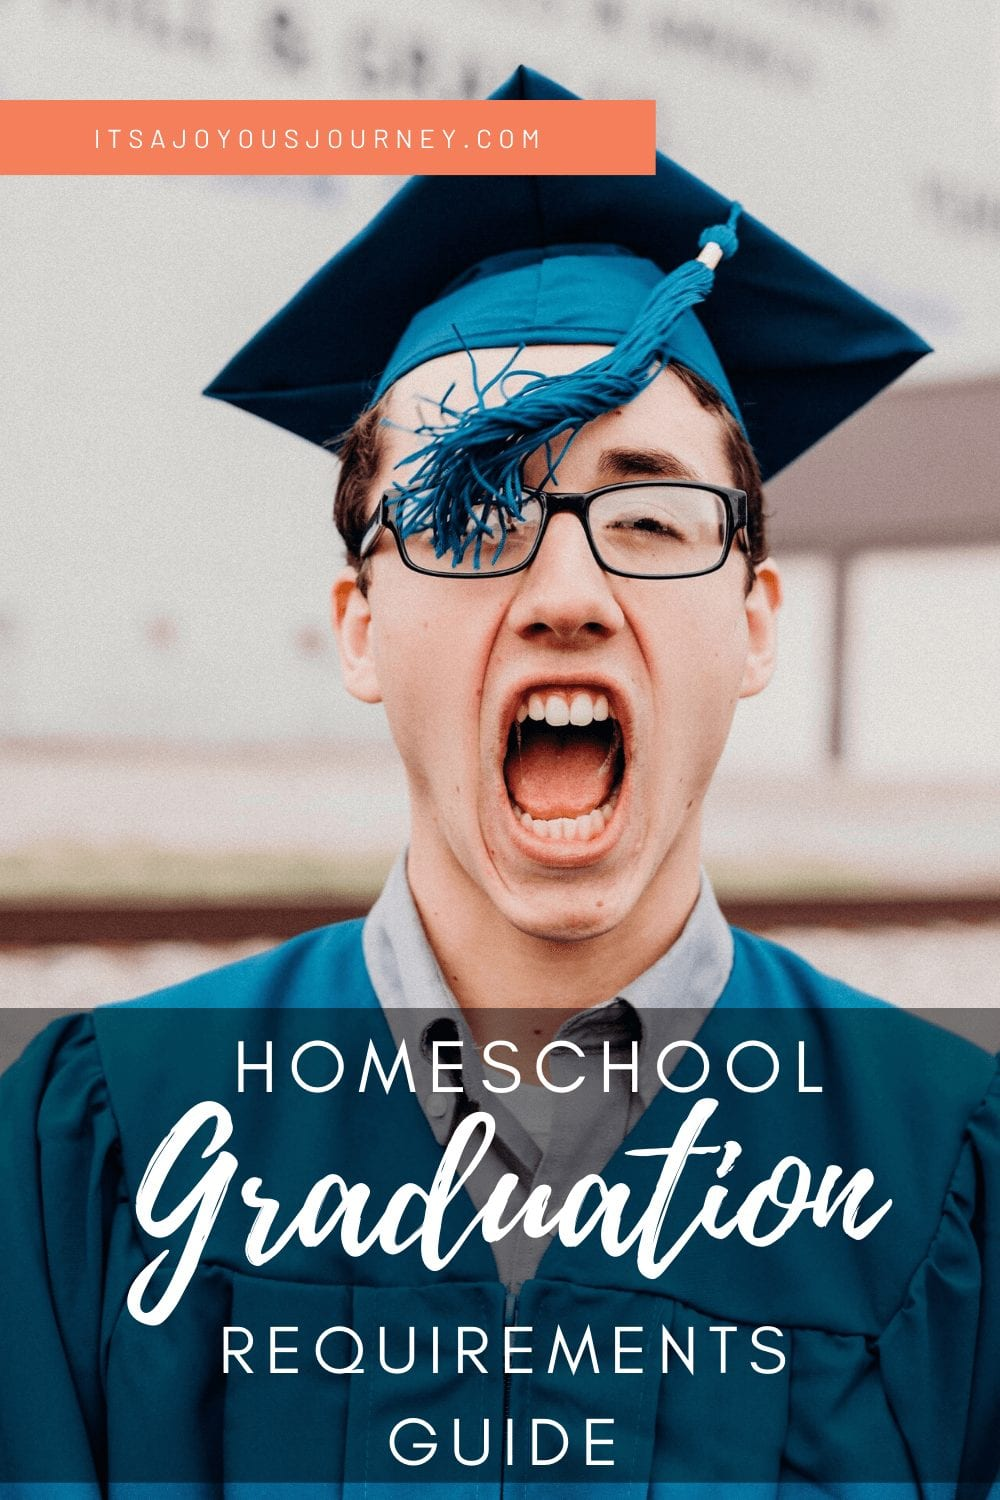 Homeschool-Graduation-Requirements